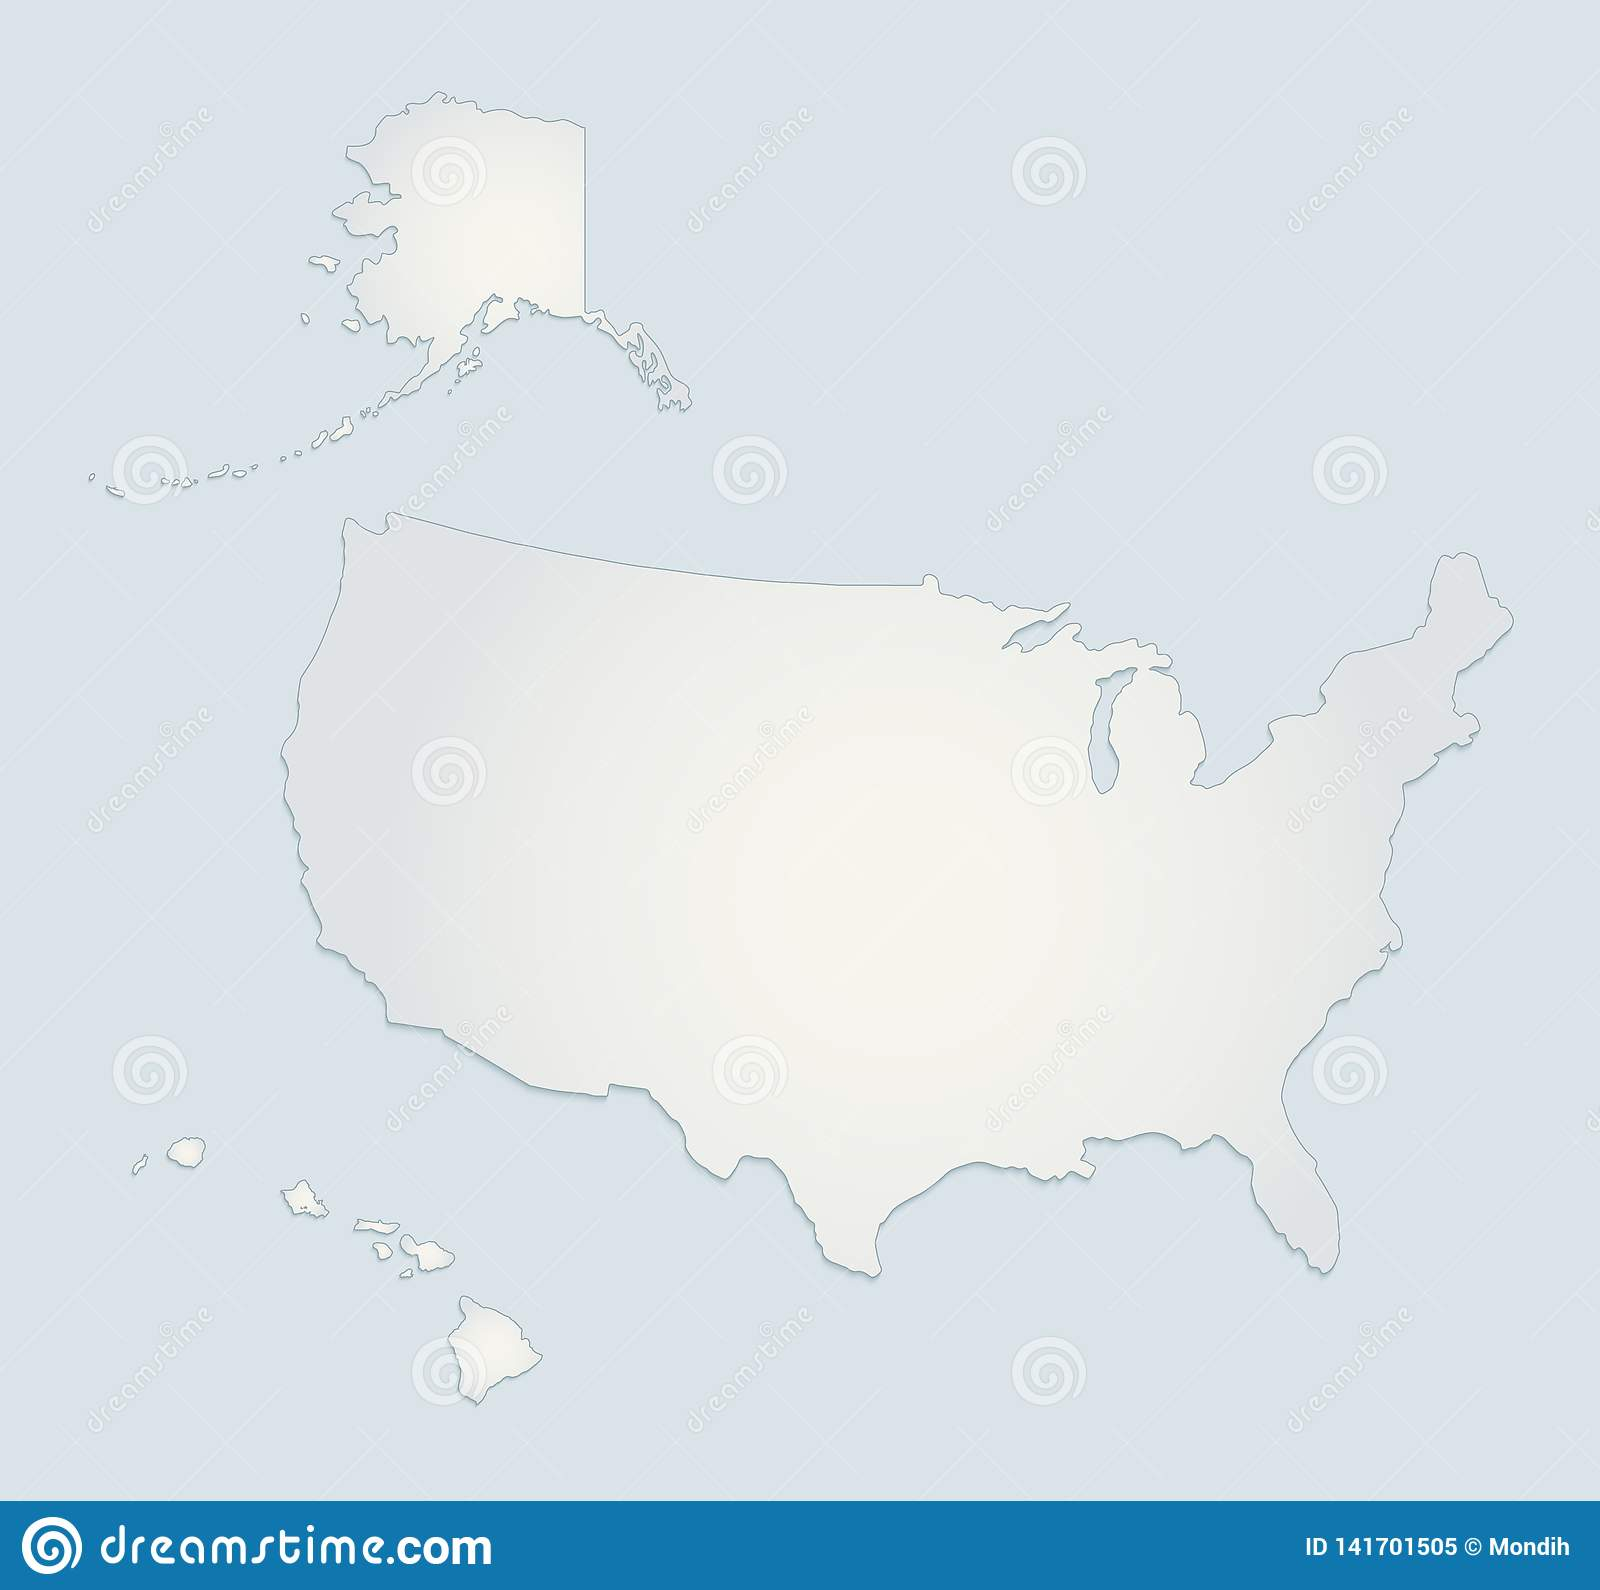 USA With Alaska And Hawaii Map Blue White Paper 3D Blank ...